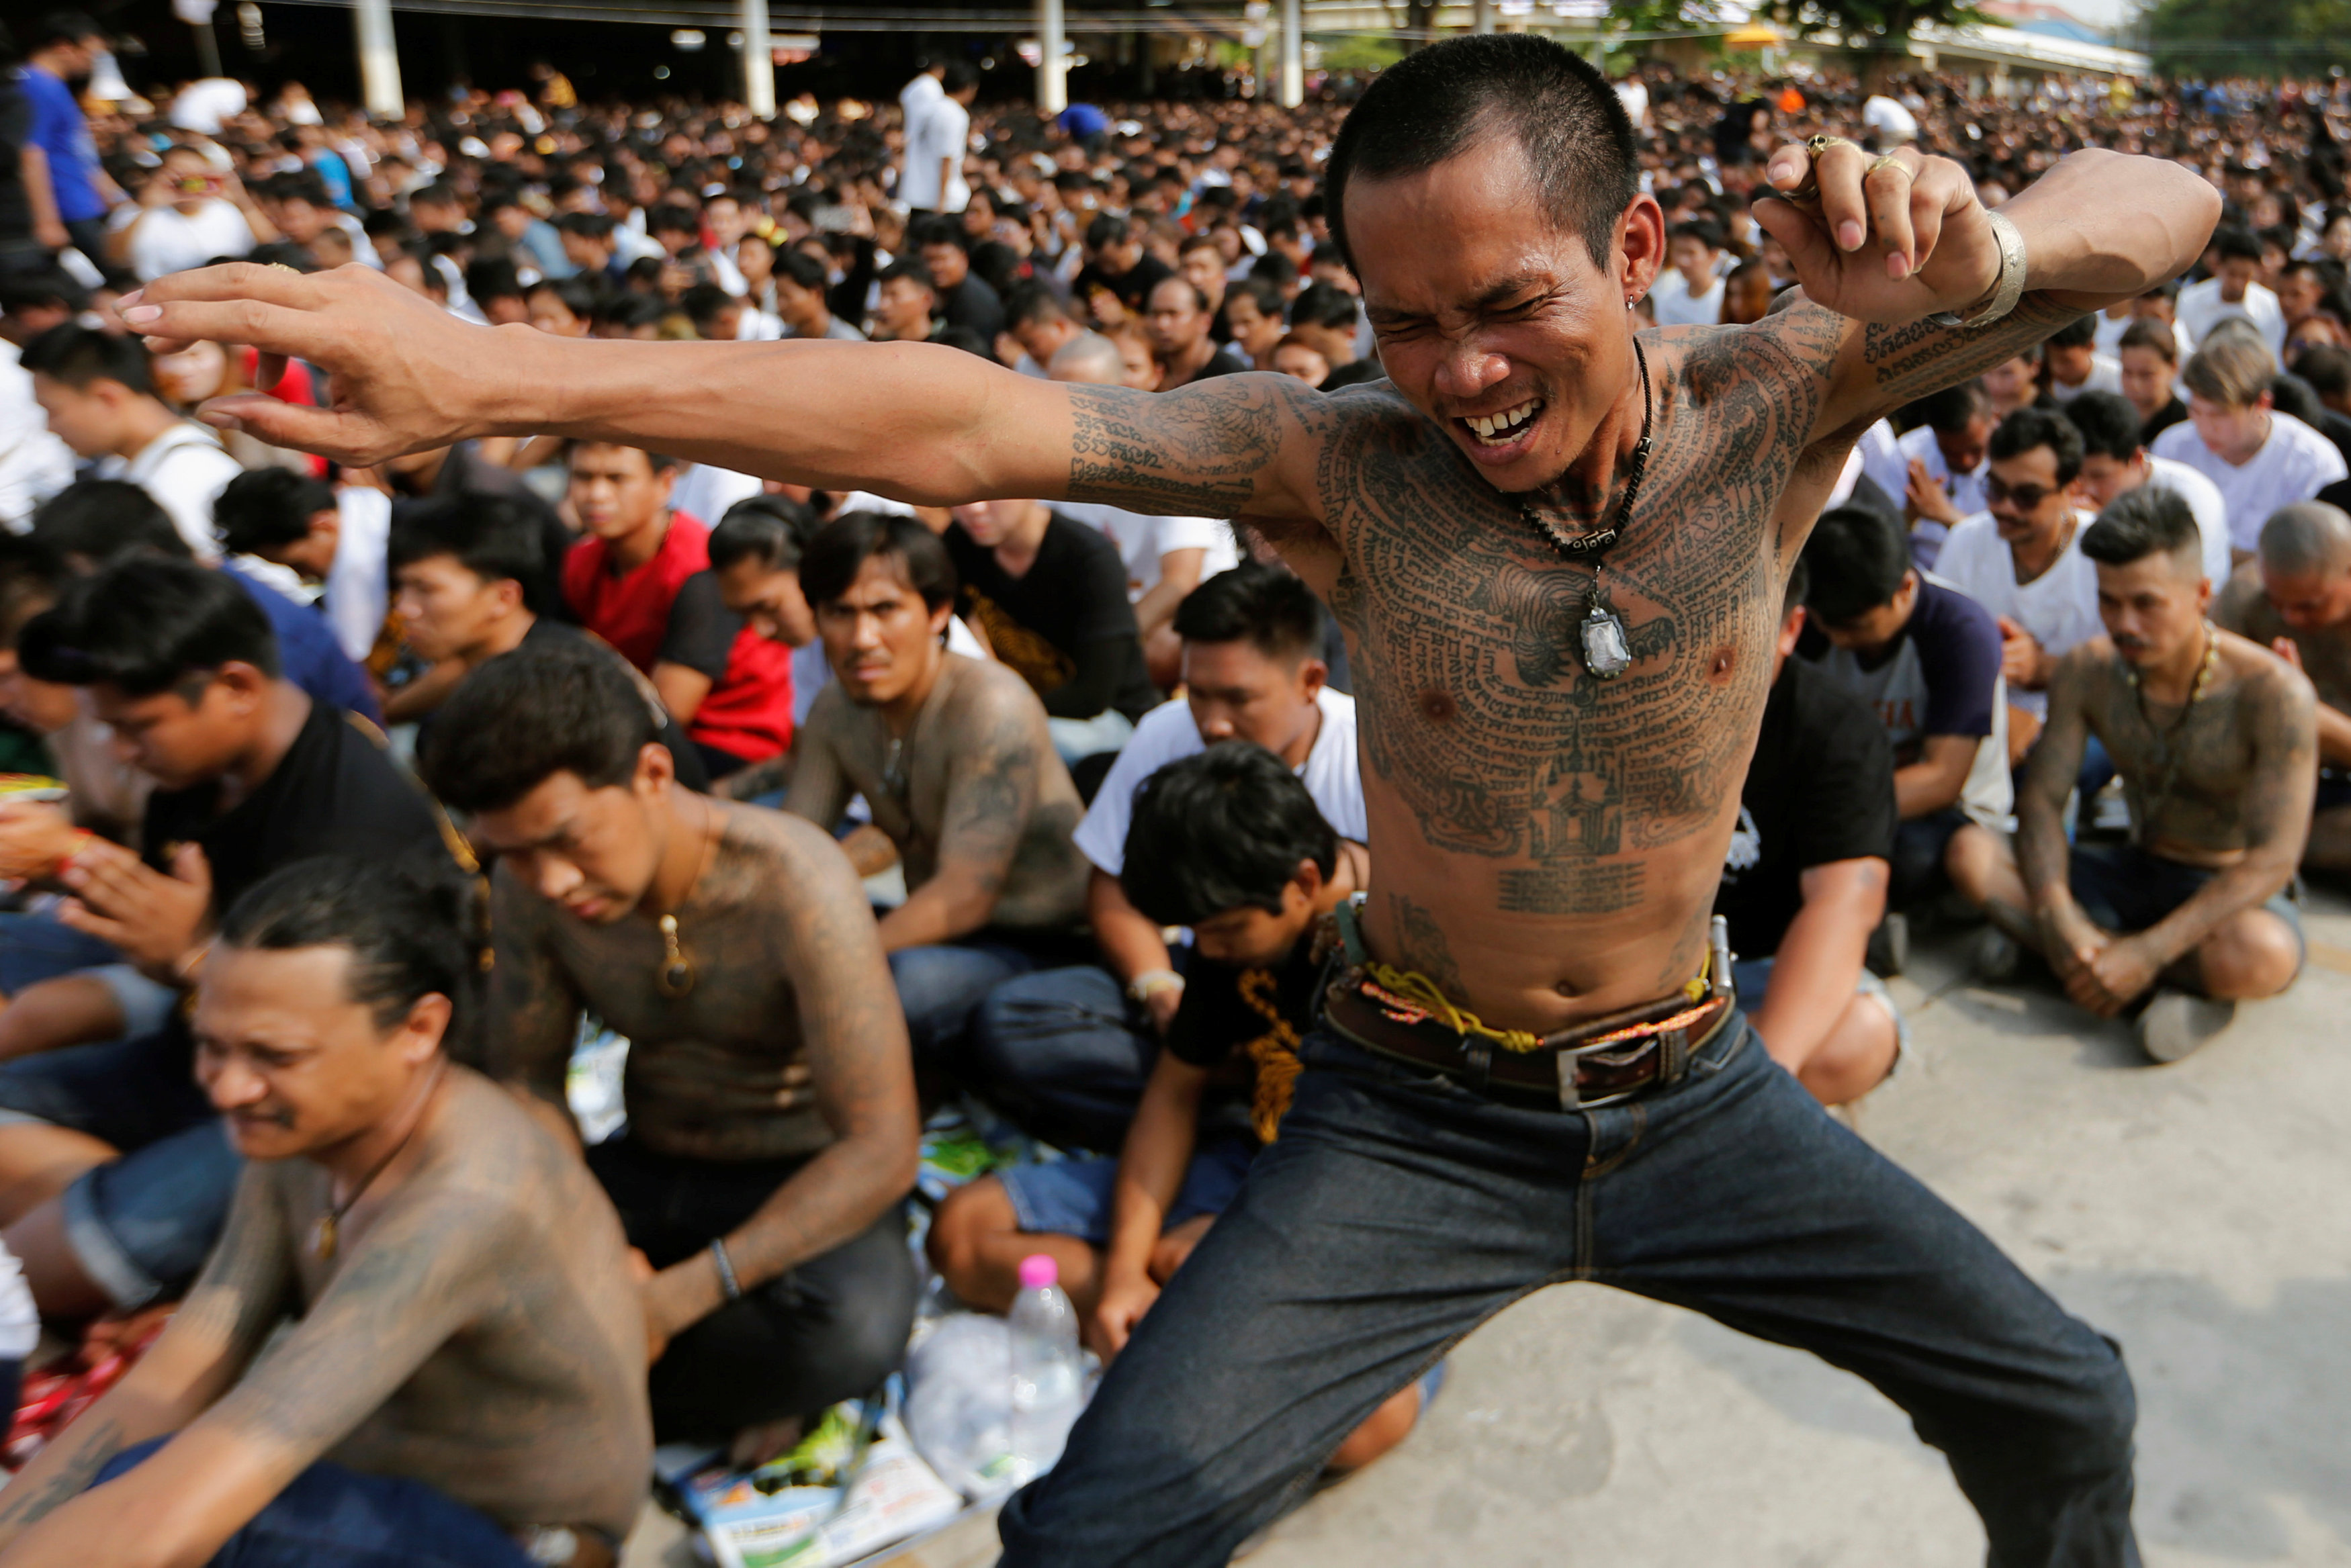 A devotee in trance mimics a beast during a religious tattoo festival at Wat Bang Phra, where devotees come to recharge the power of their sacred tattoos, in Nakhon Pathom province, Thailand, March 11, 2017. REUTERS/Jorge Silva